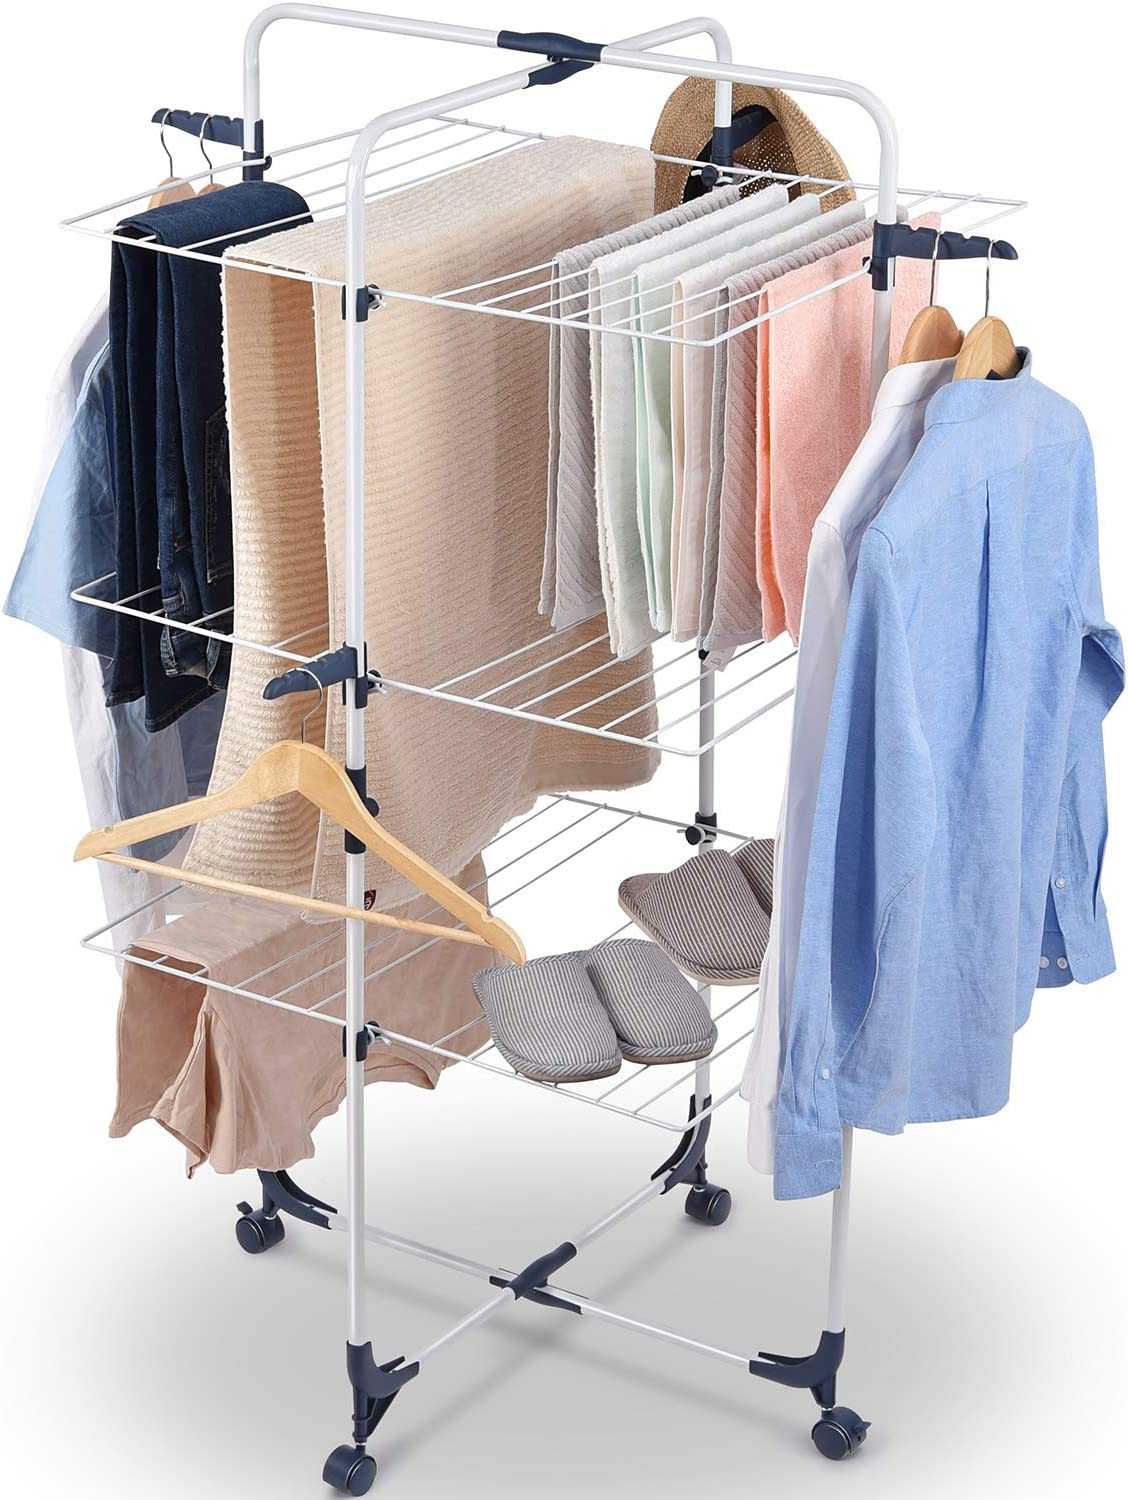 TOOLF Clothes Drying Rack, 3-Tier Collapsible Laundry Rack Stand Garment Drying Station with Wheels and 4 Hooks, Indoor-Outdoor Use, for for Bed Linen, Clothing, Socks, Scarves